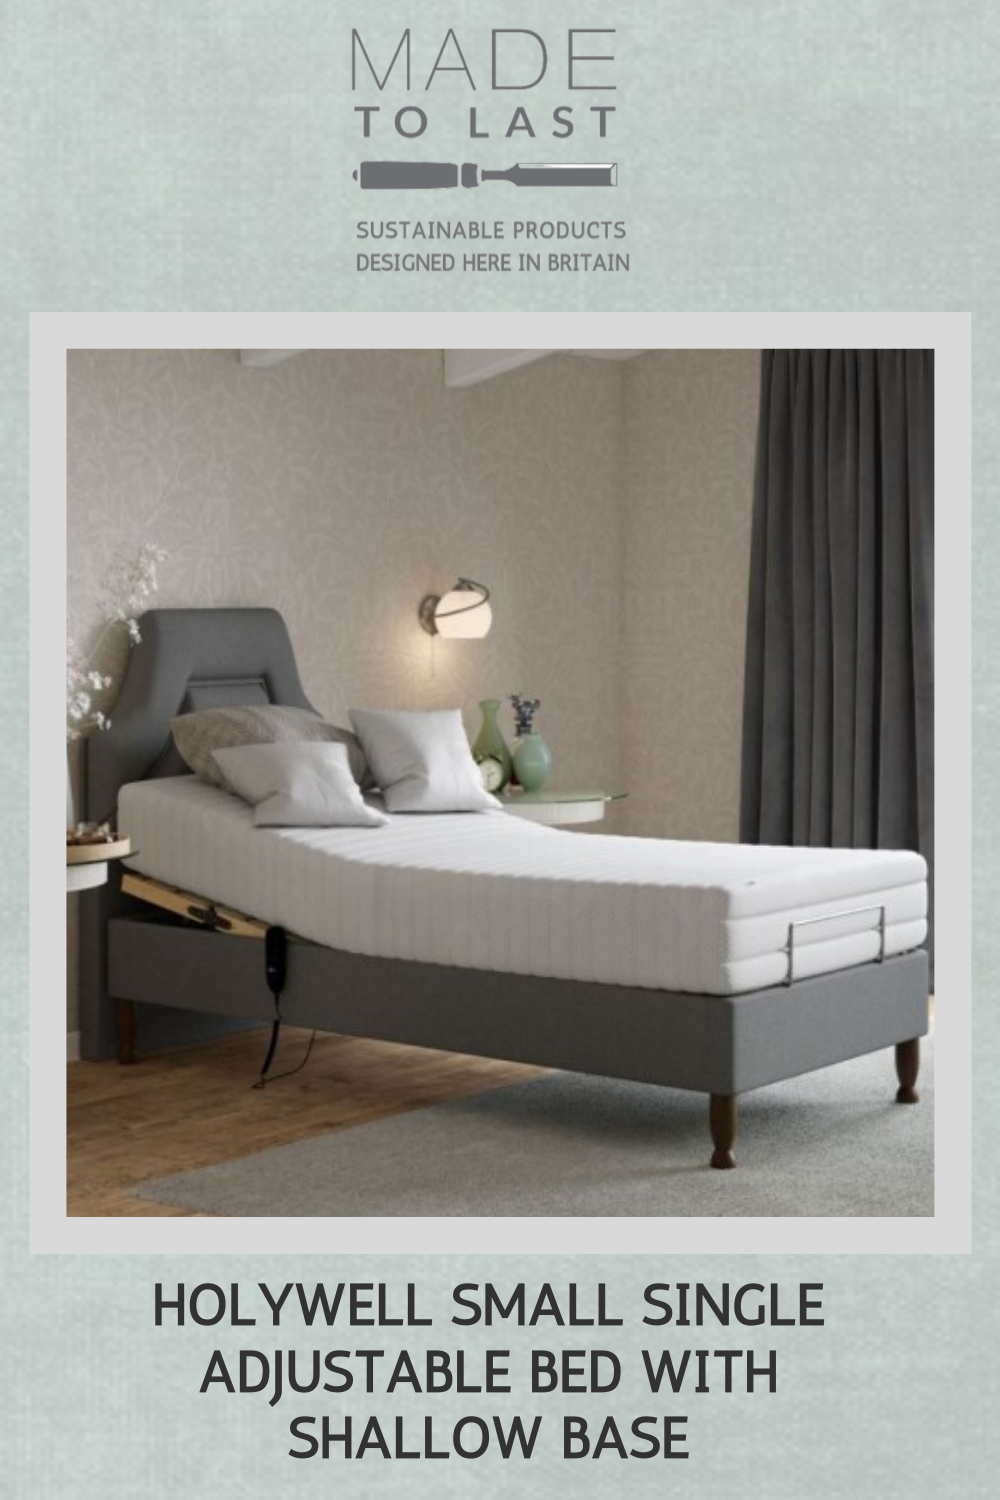 Holywell Small Single Adjustable Bed with Shallow Base in